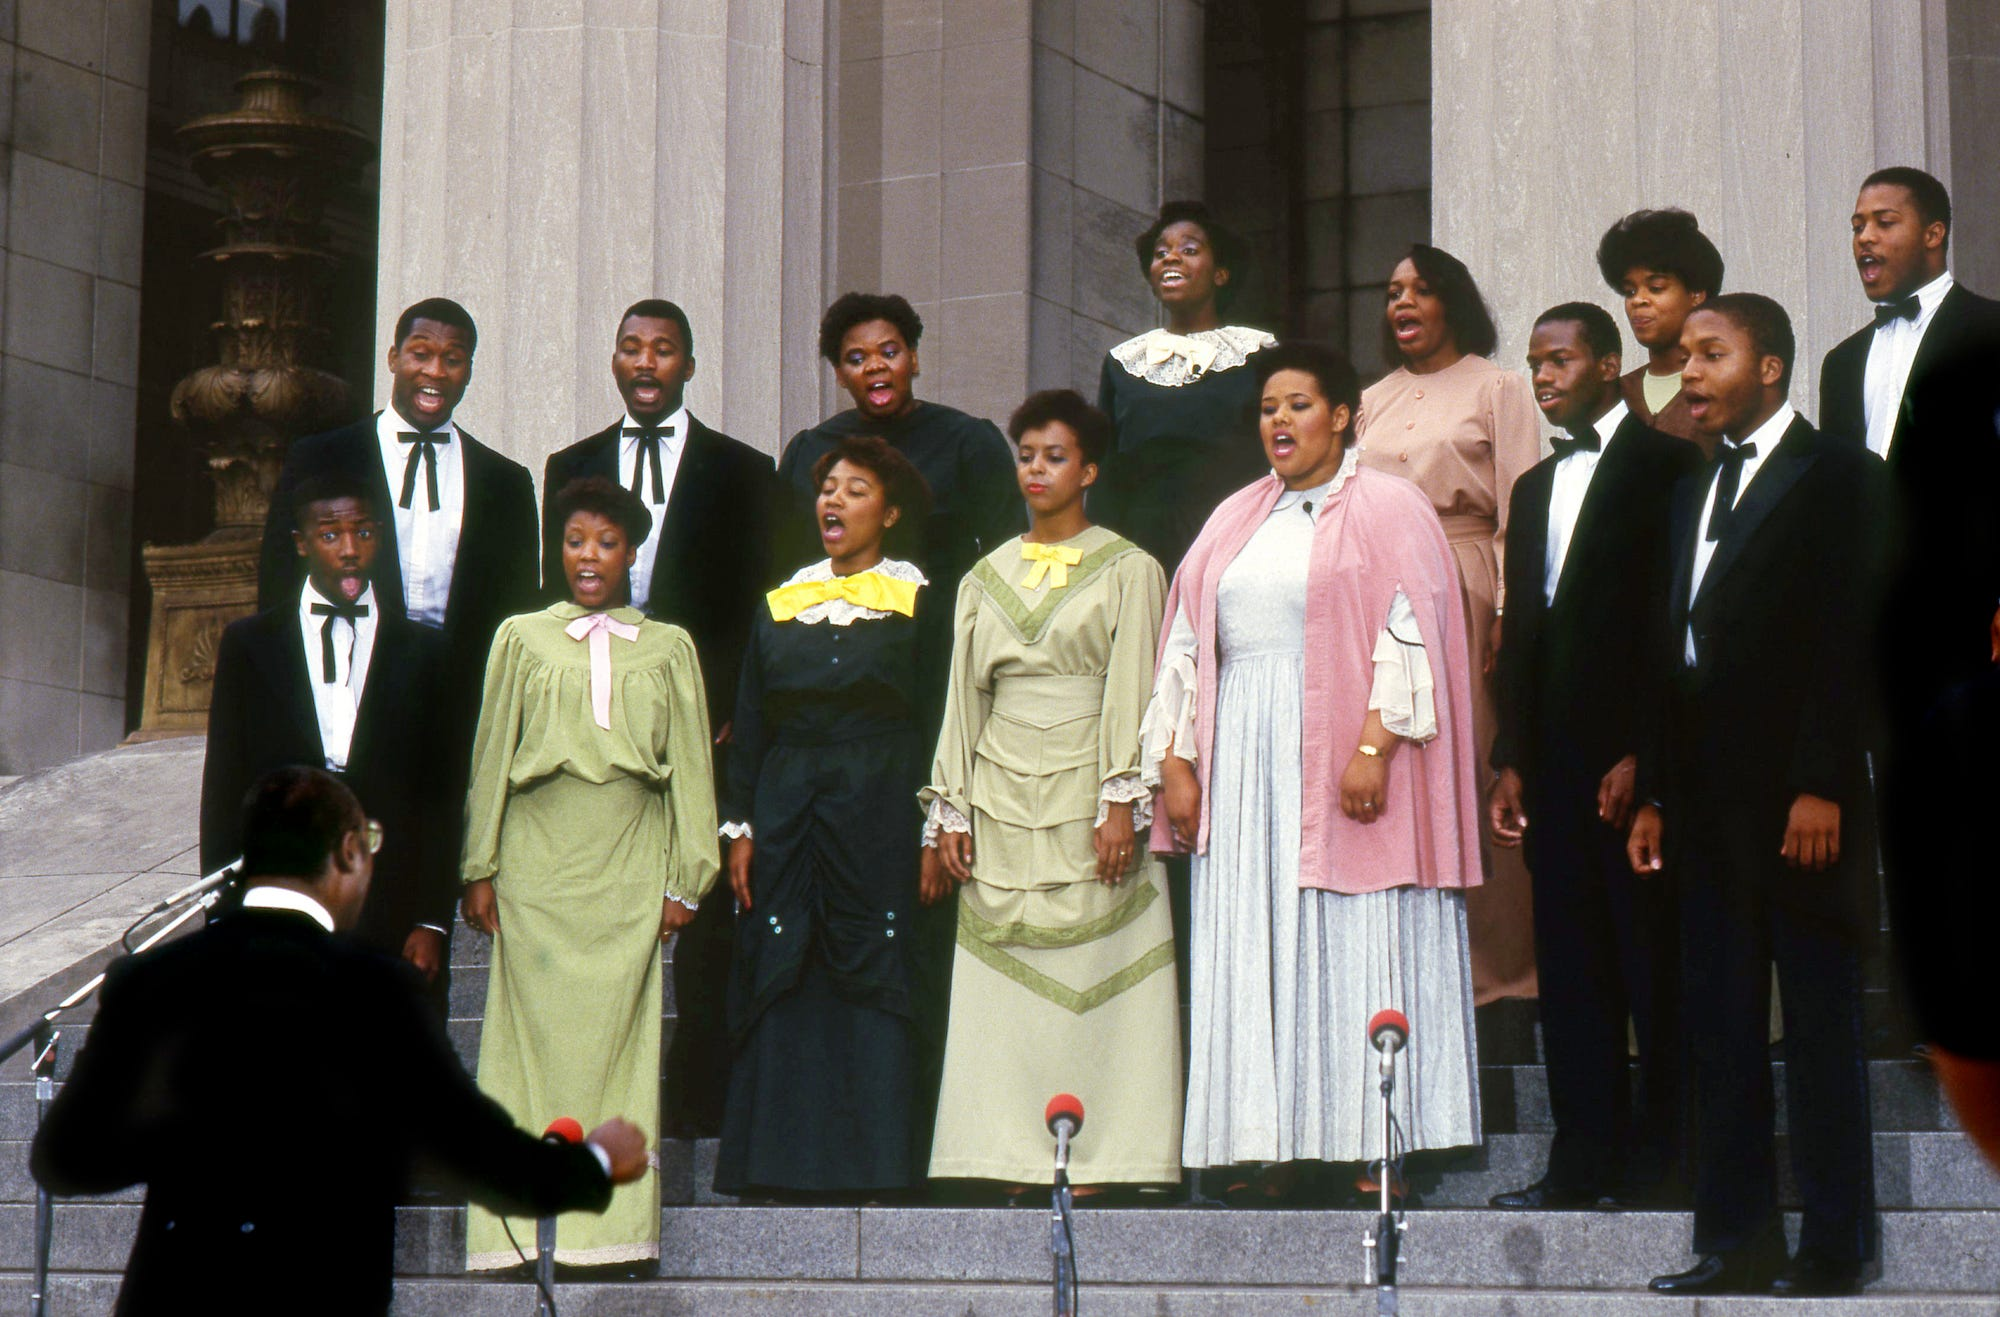 """The Fisk Jubilee Singers, wearing outfits that the founding members could have worn in 1871, perform on the steps of the War Memorial building during the live Nashville show of NBC's """"Today"""" show May 19, 1987."""